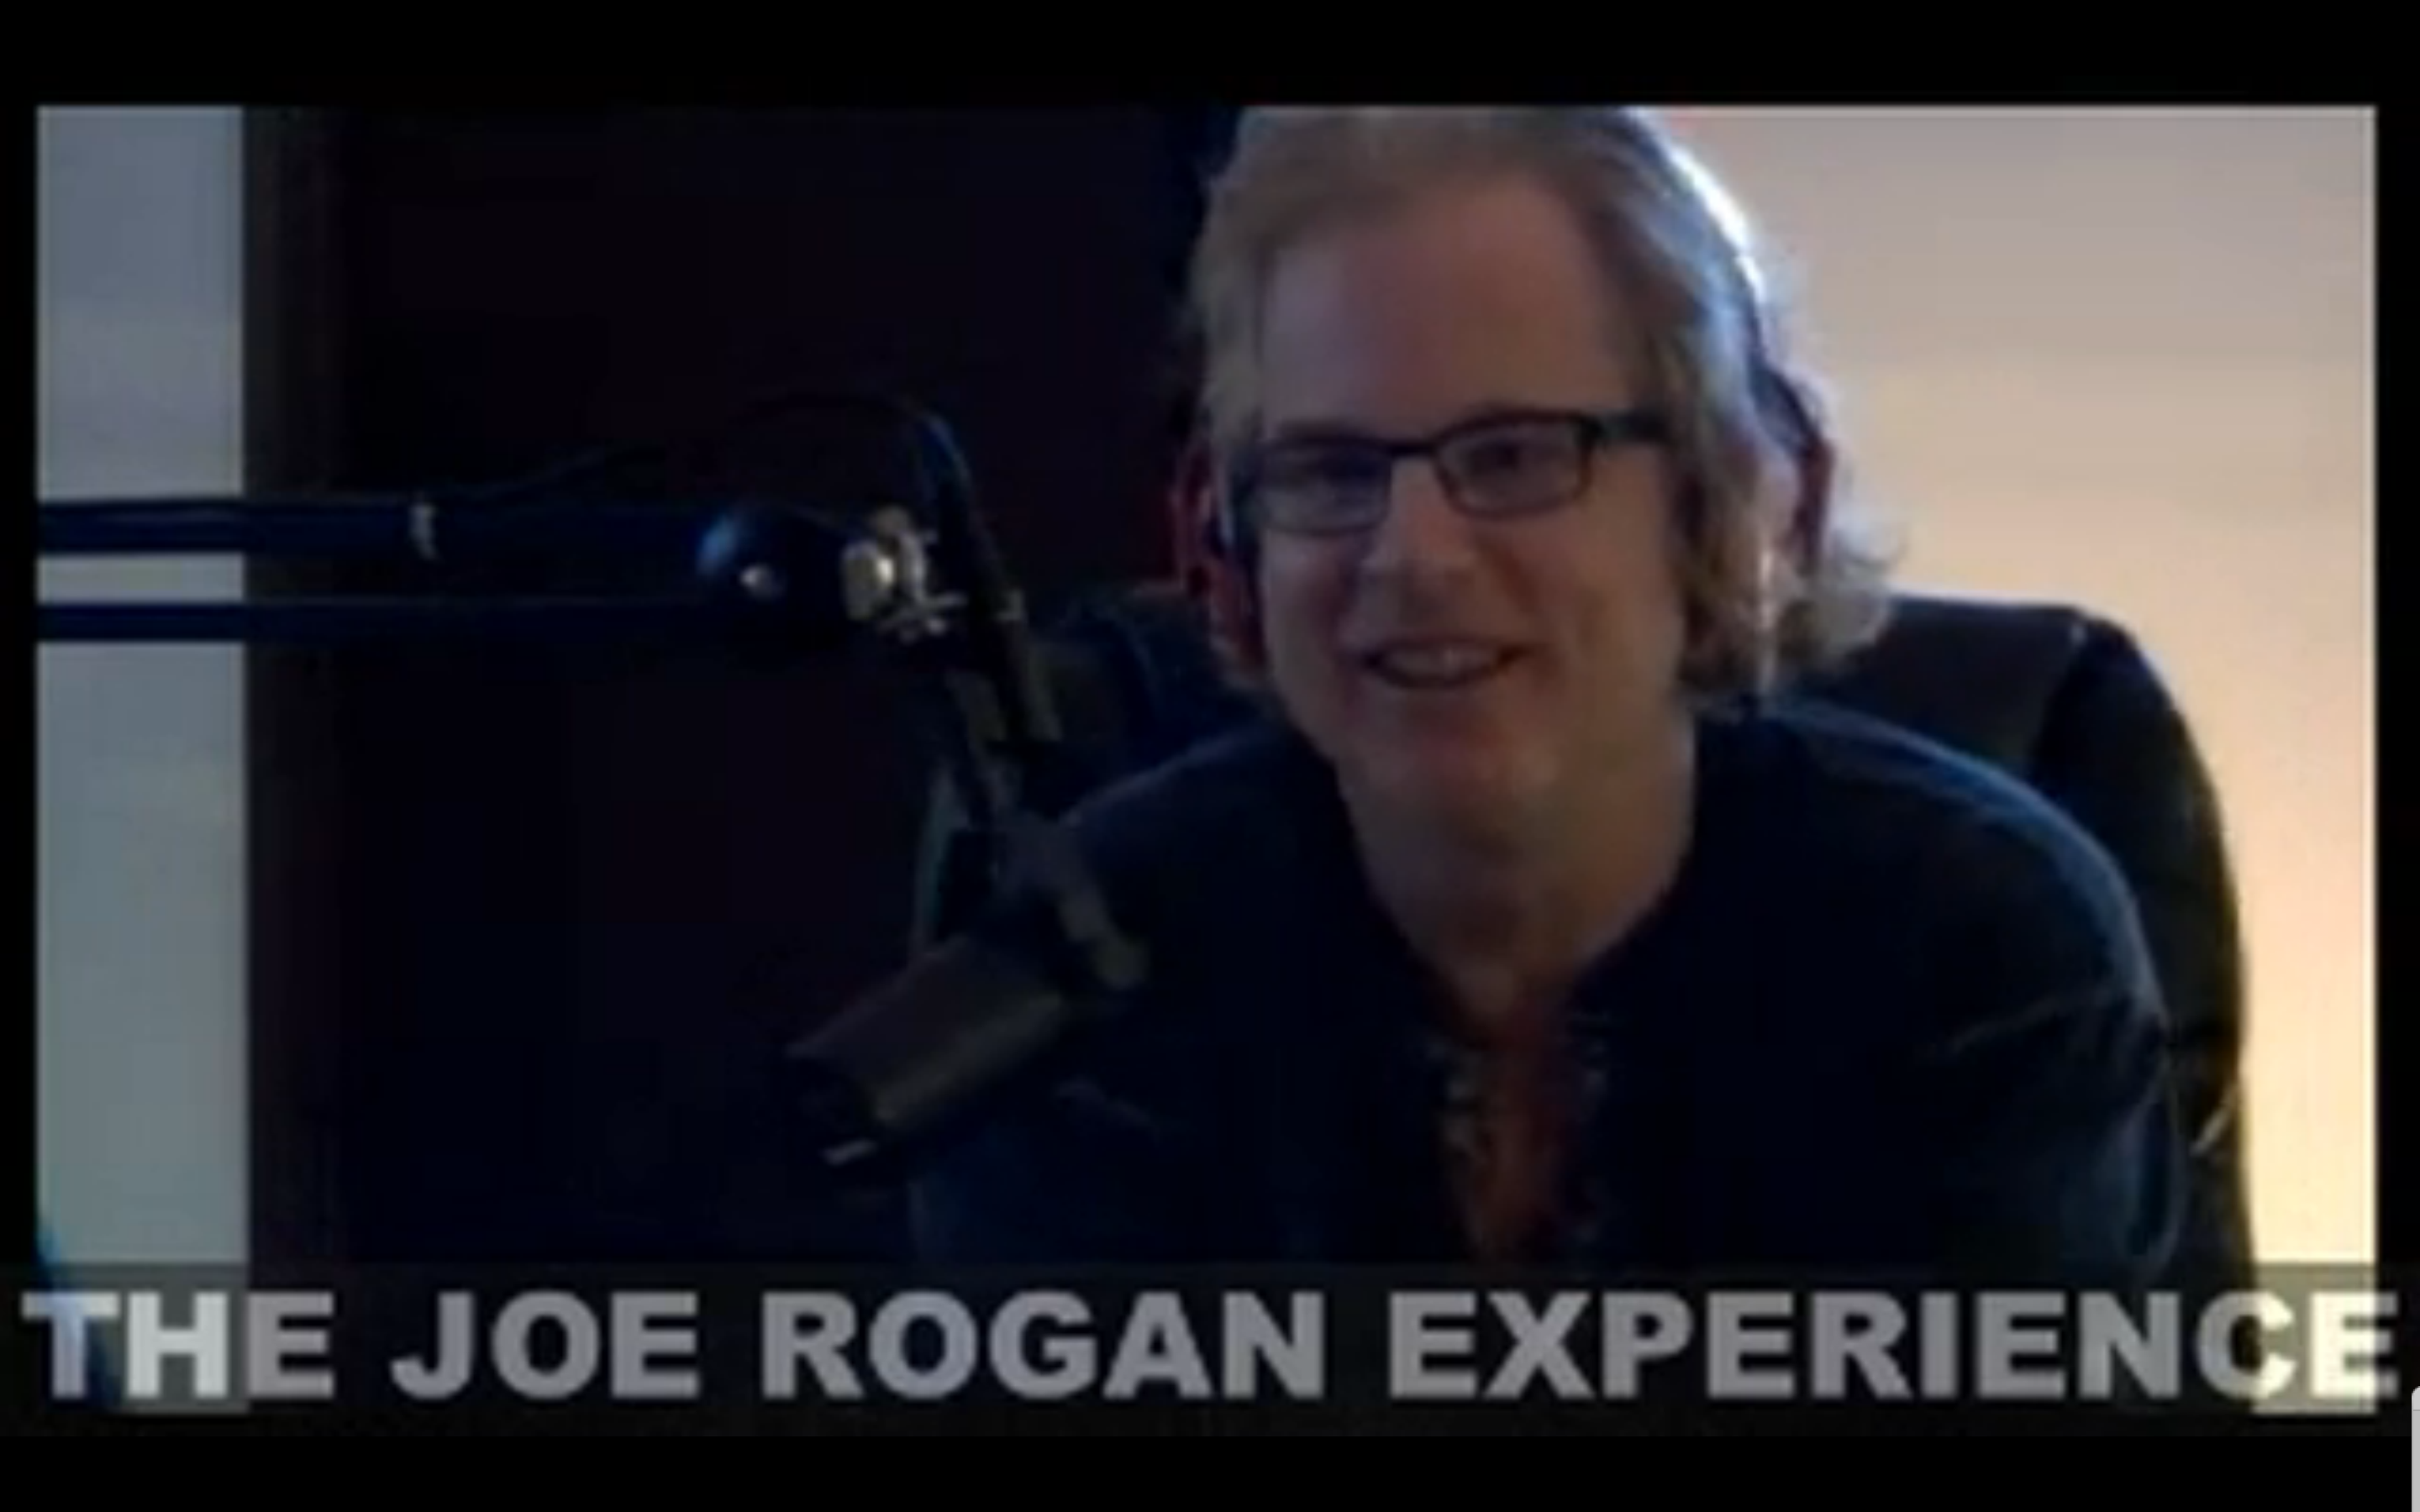 The Joe Rogan Experience #306 - Christopher Ryan, Brian Redban